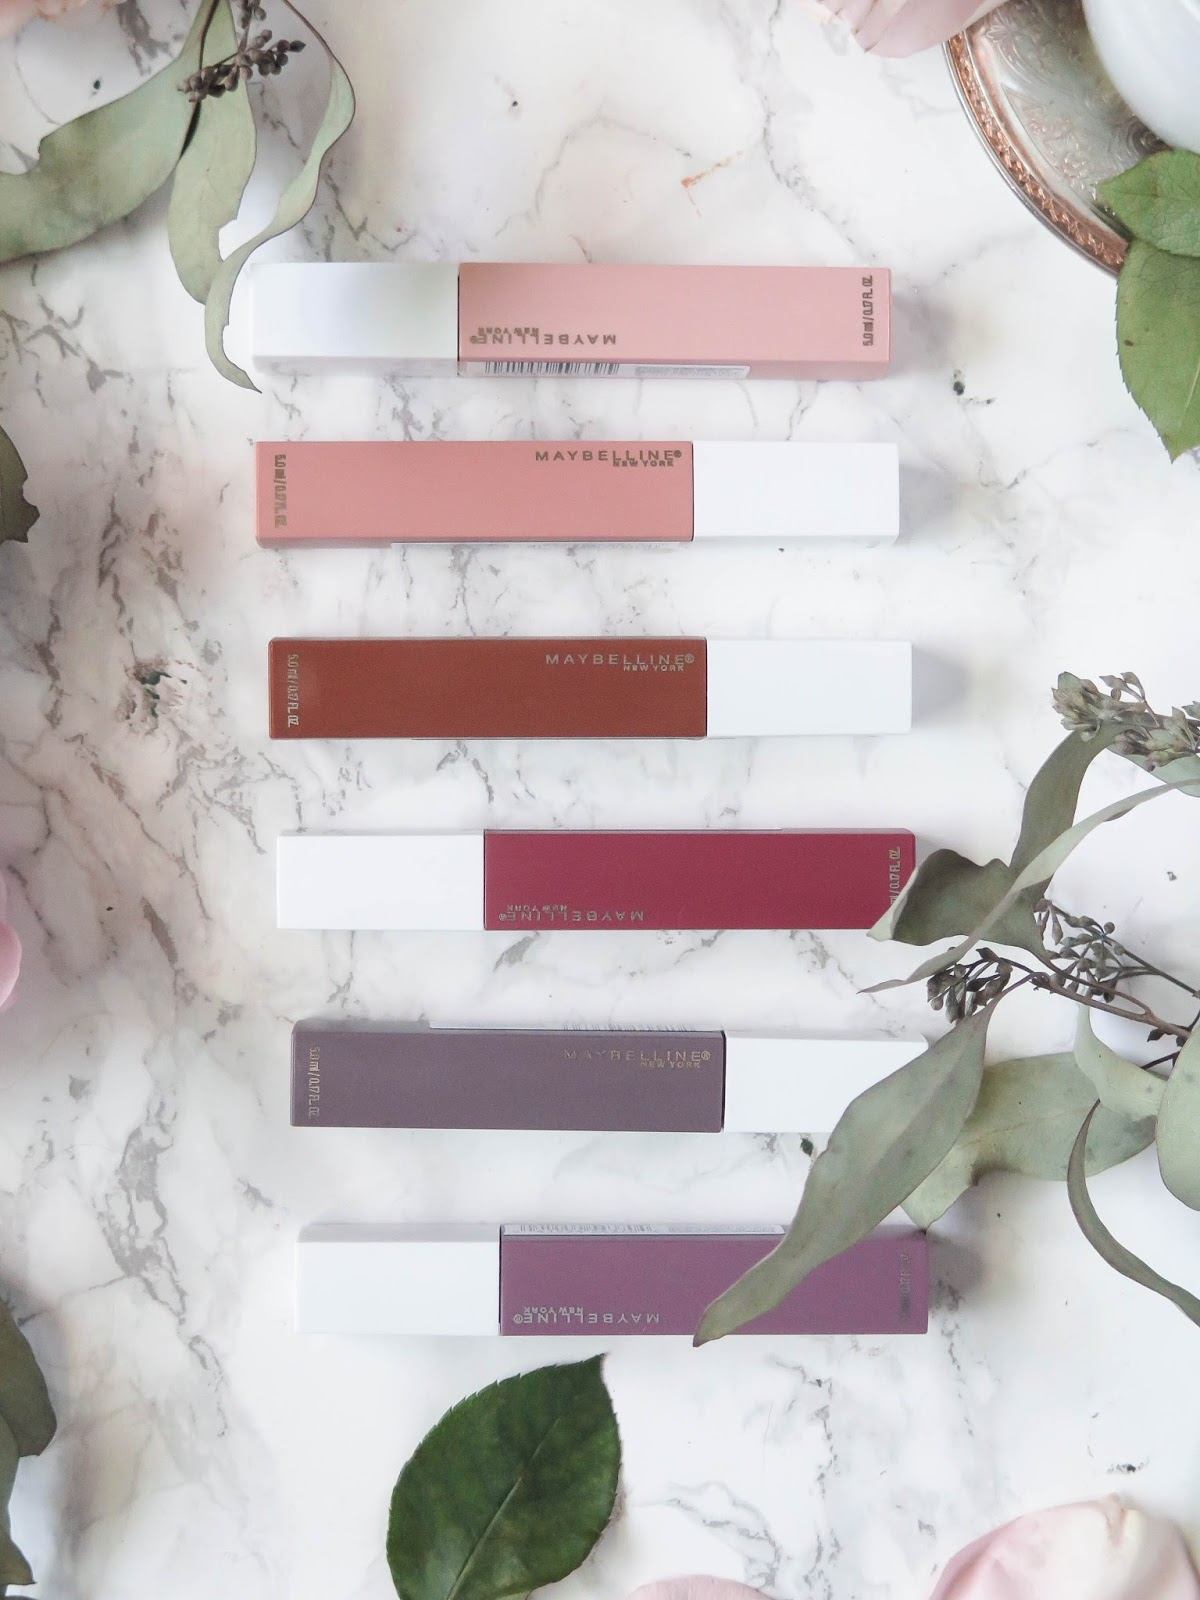 A New Nude | Maybelline SuperStay Matte Ink Liquid Lipsticks | The UnNudes Collection | Review | labellesirene.ca